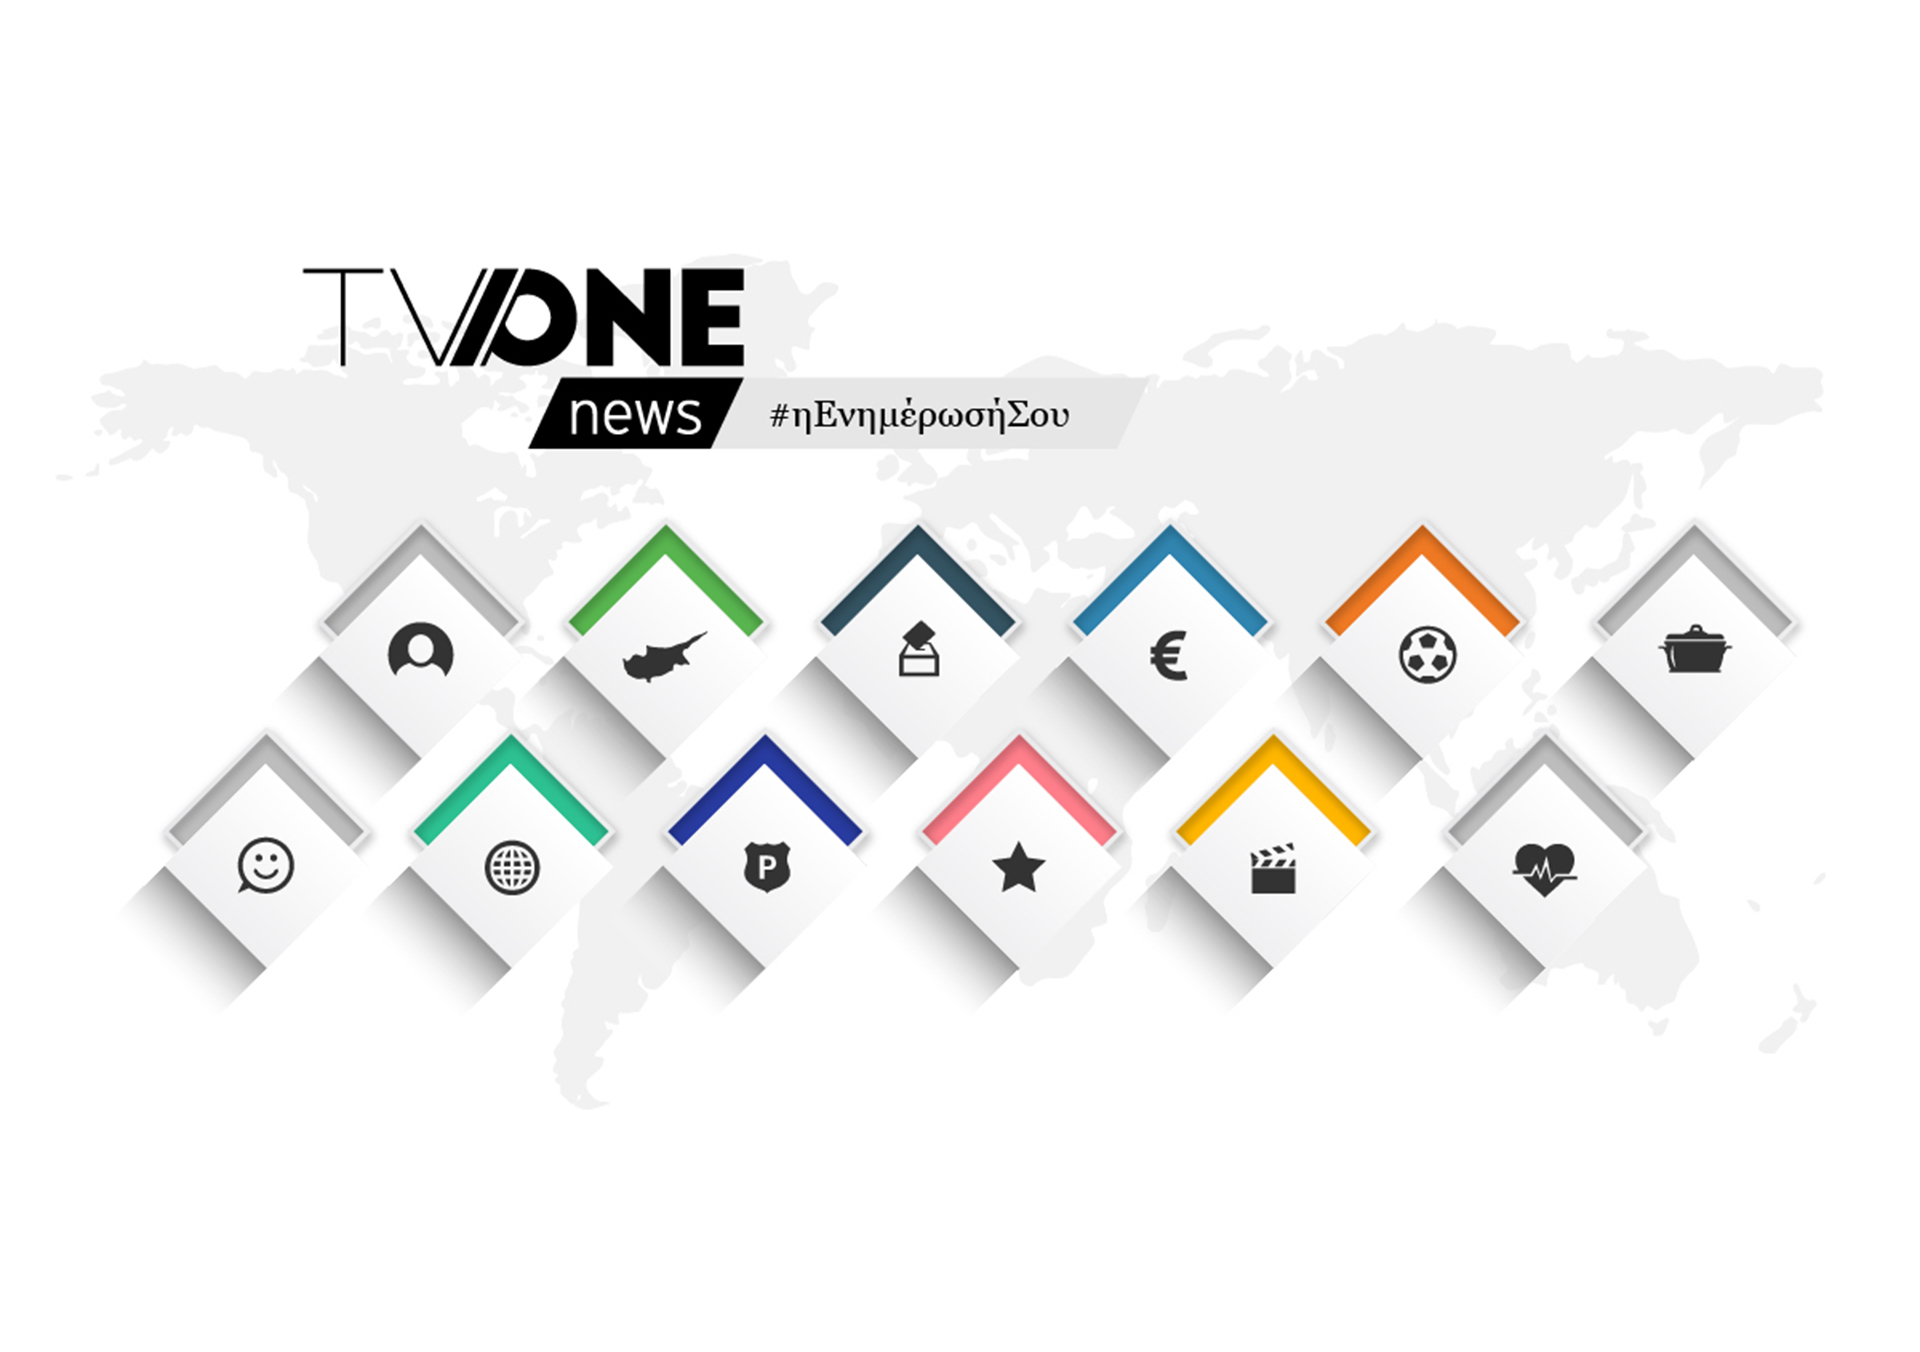 TVONE NEWS Social Media Support